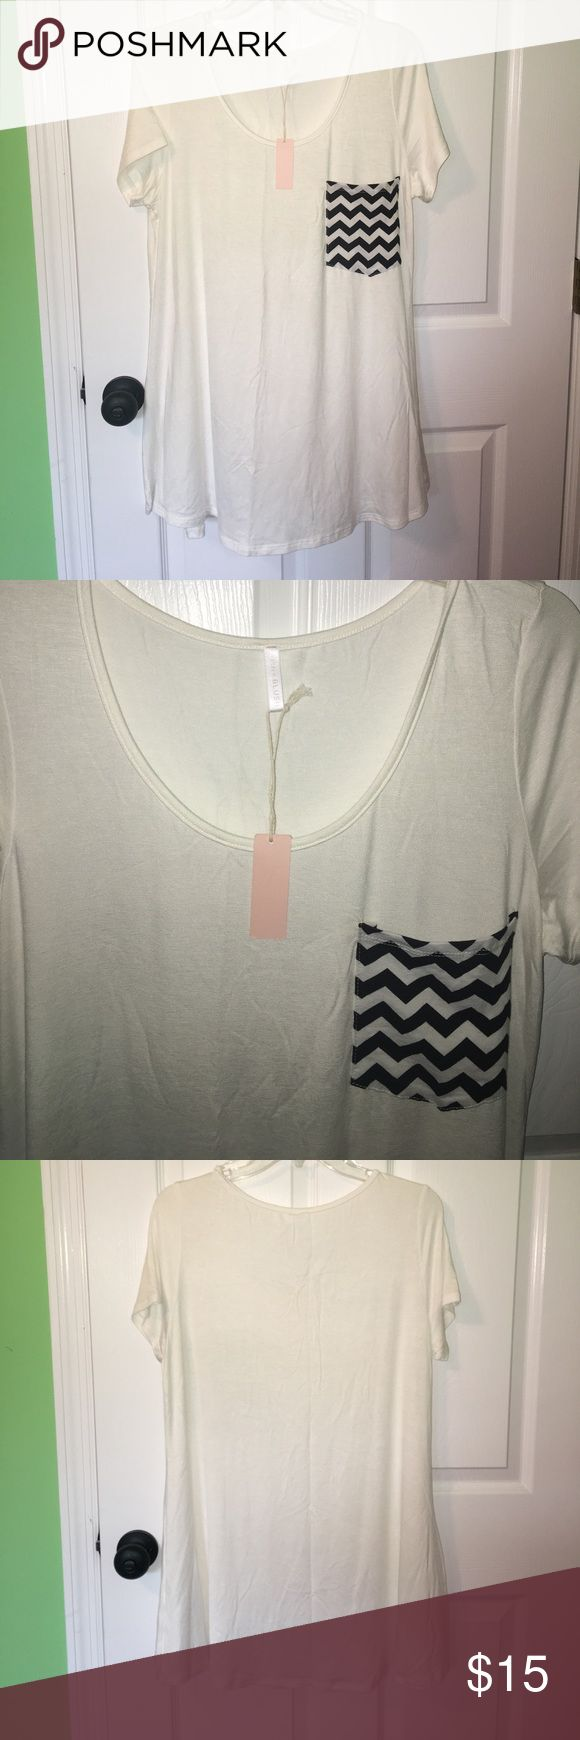 Maternity Chevron Pocket Tee NWT from PINKBLUSH. Size 1X. It so wrinkly because it's been in the clear bag it came in. Pinkblush Tops Tees - Short Sleeve